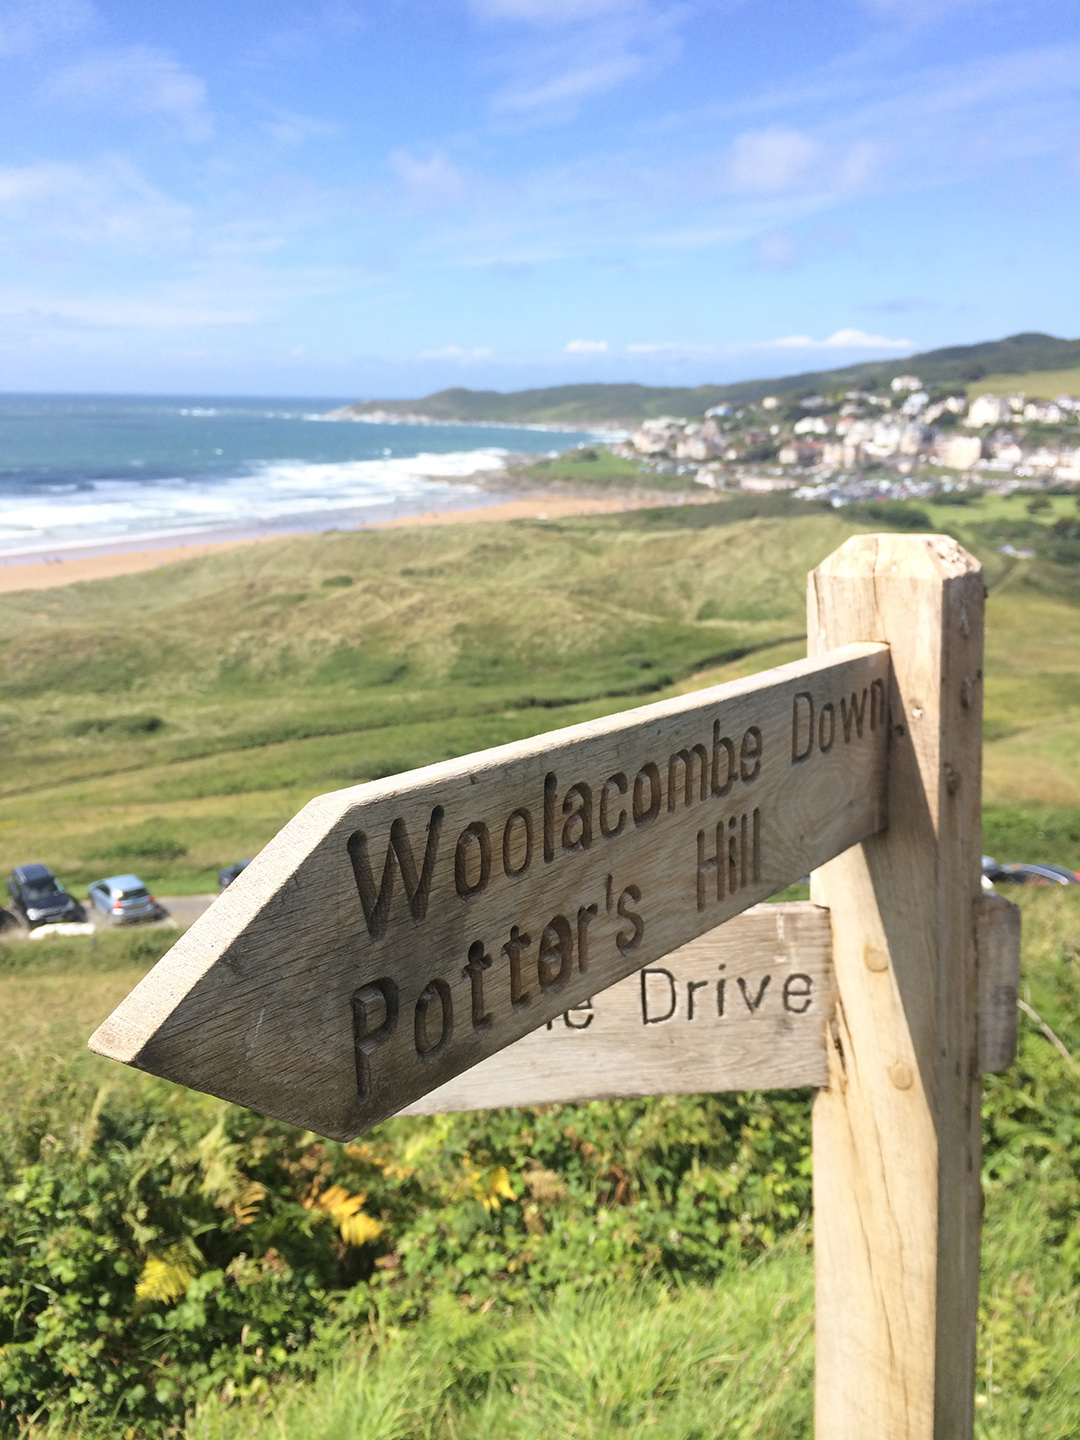 The path climbing Potter's Hill, looking back towards Woolacombe